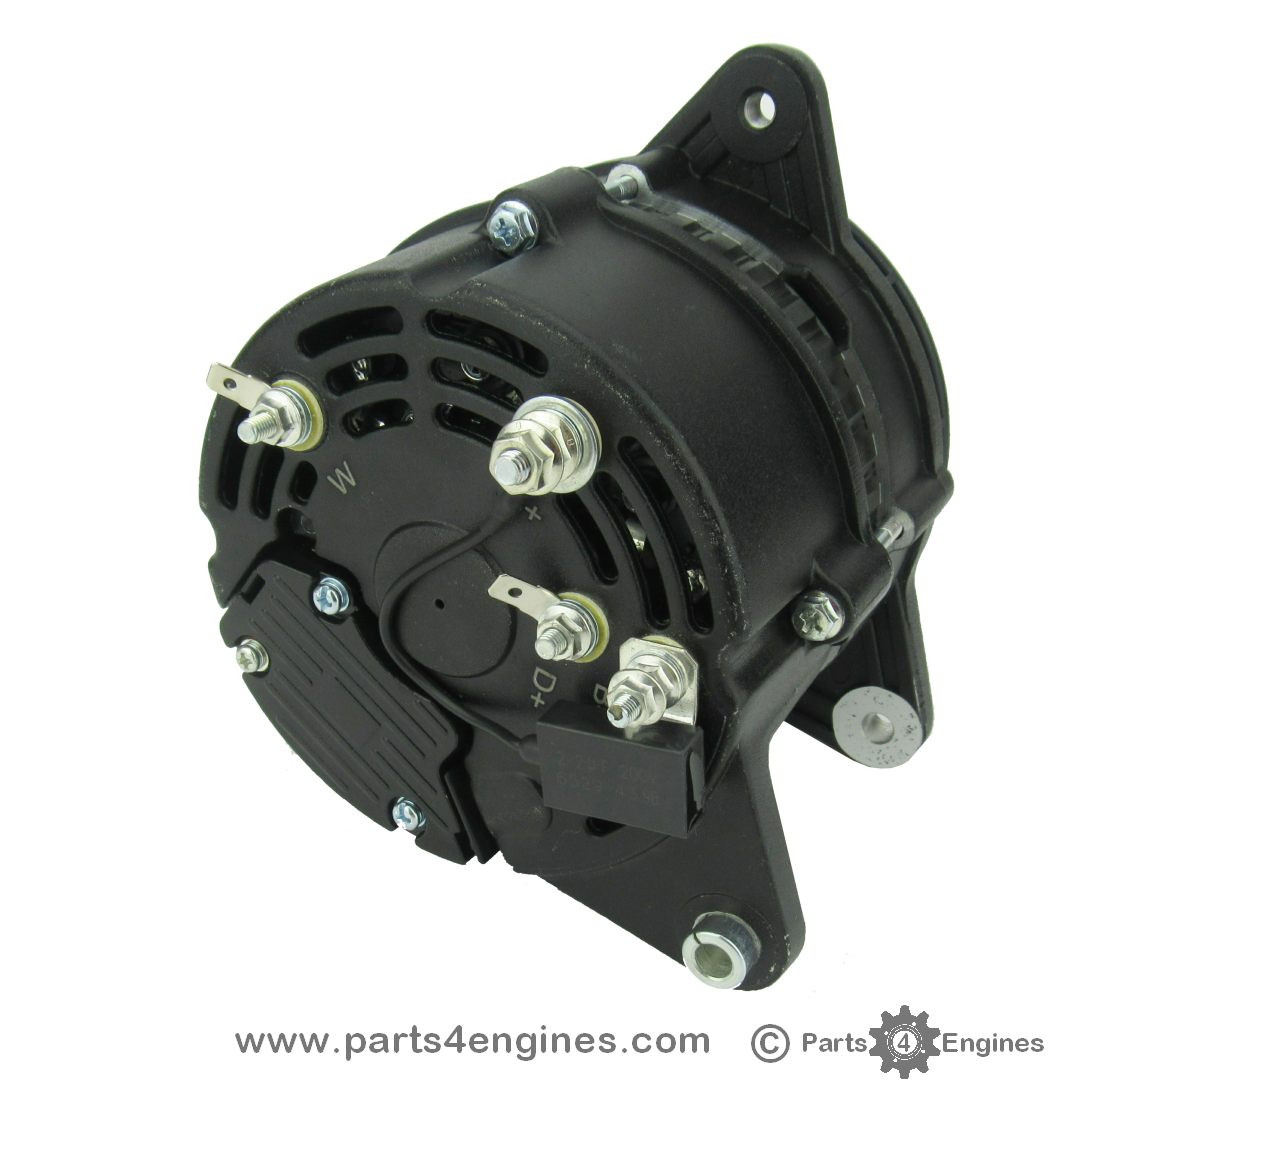 Perkins 6.354 90A high output (isolated earth) alternator from Parts4Engines.com